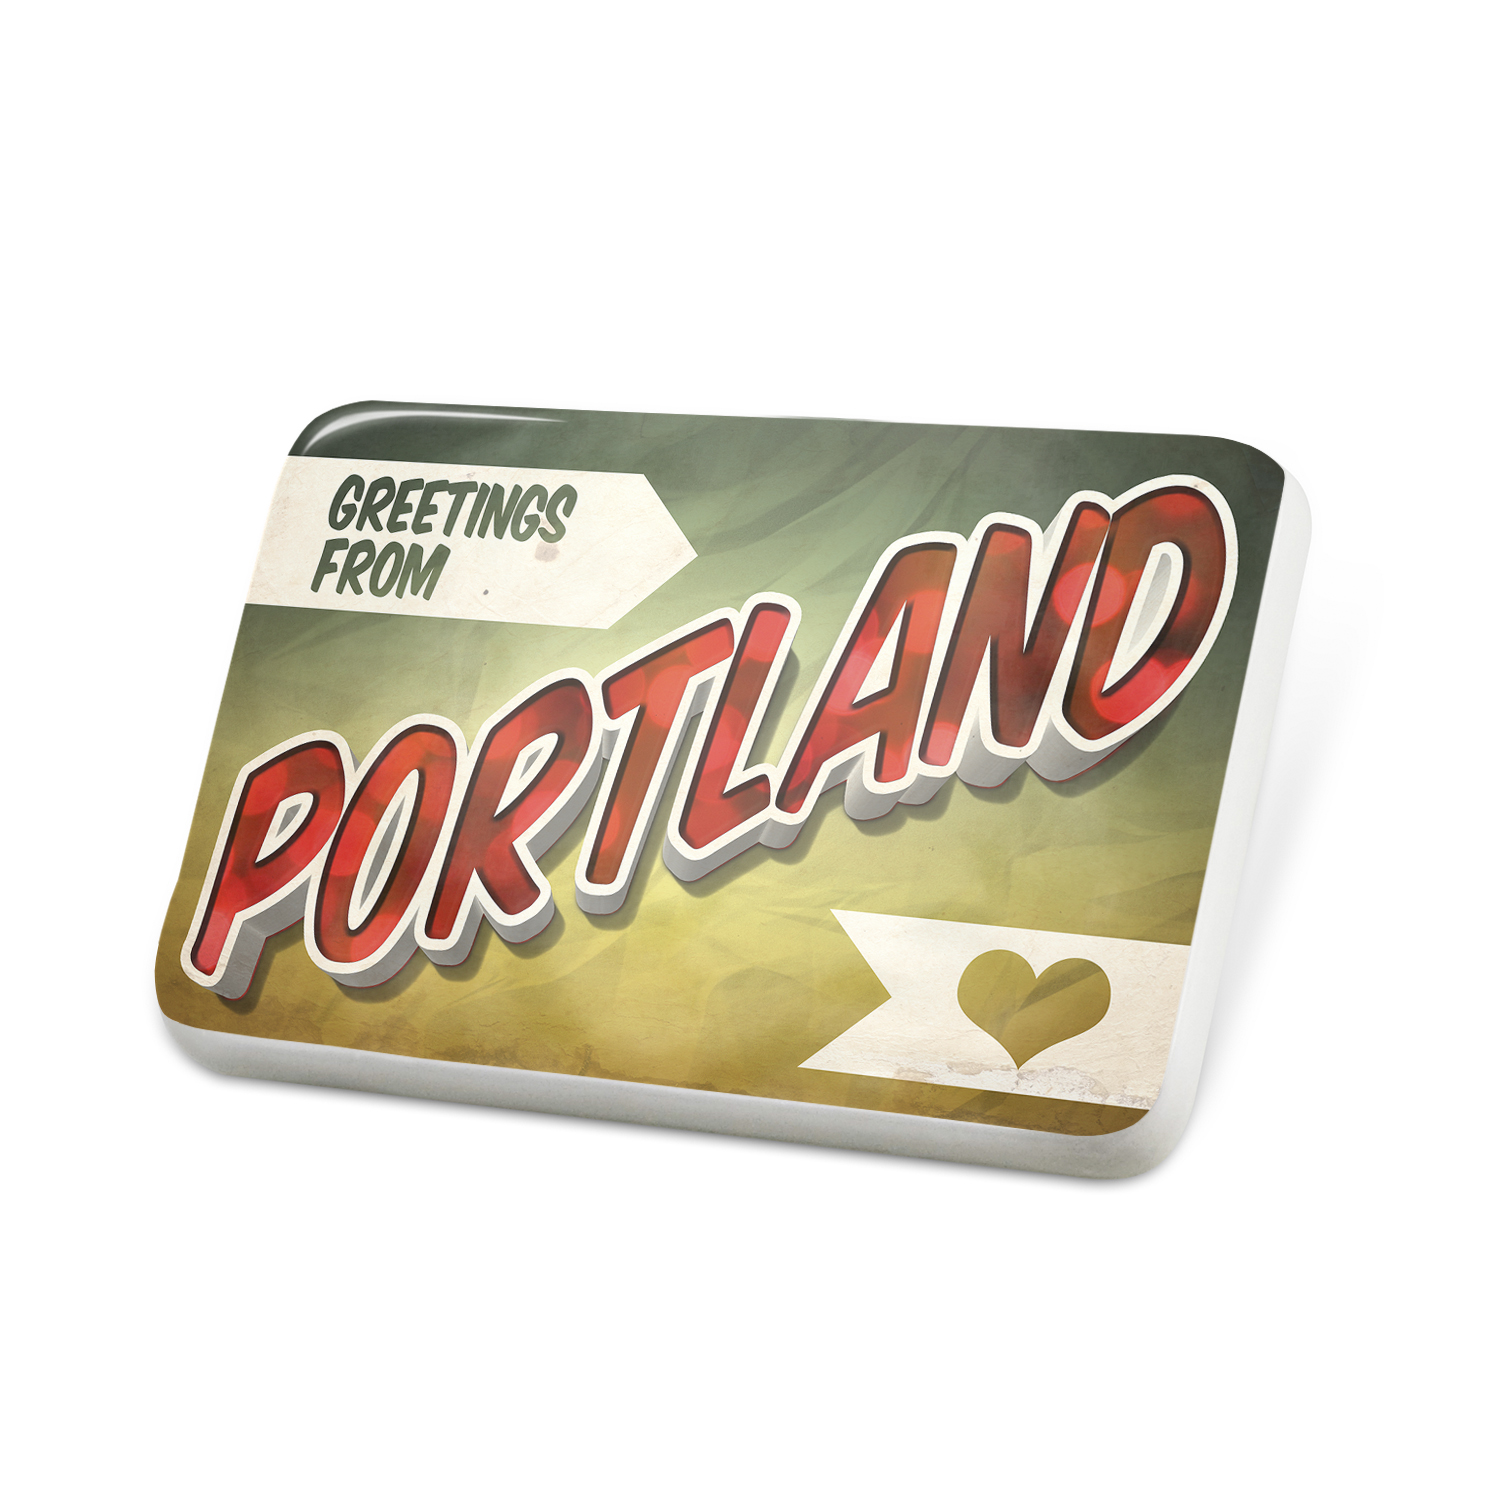 Porcelein Pin Greetings from Portland, Vintage Postcard Lapel Badge – NEONBLOND